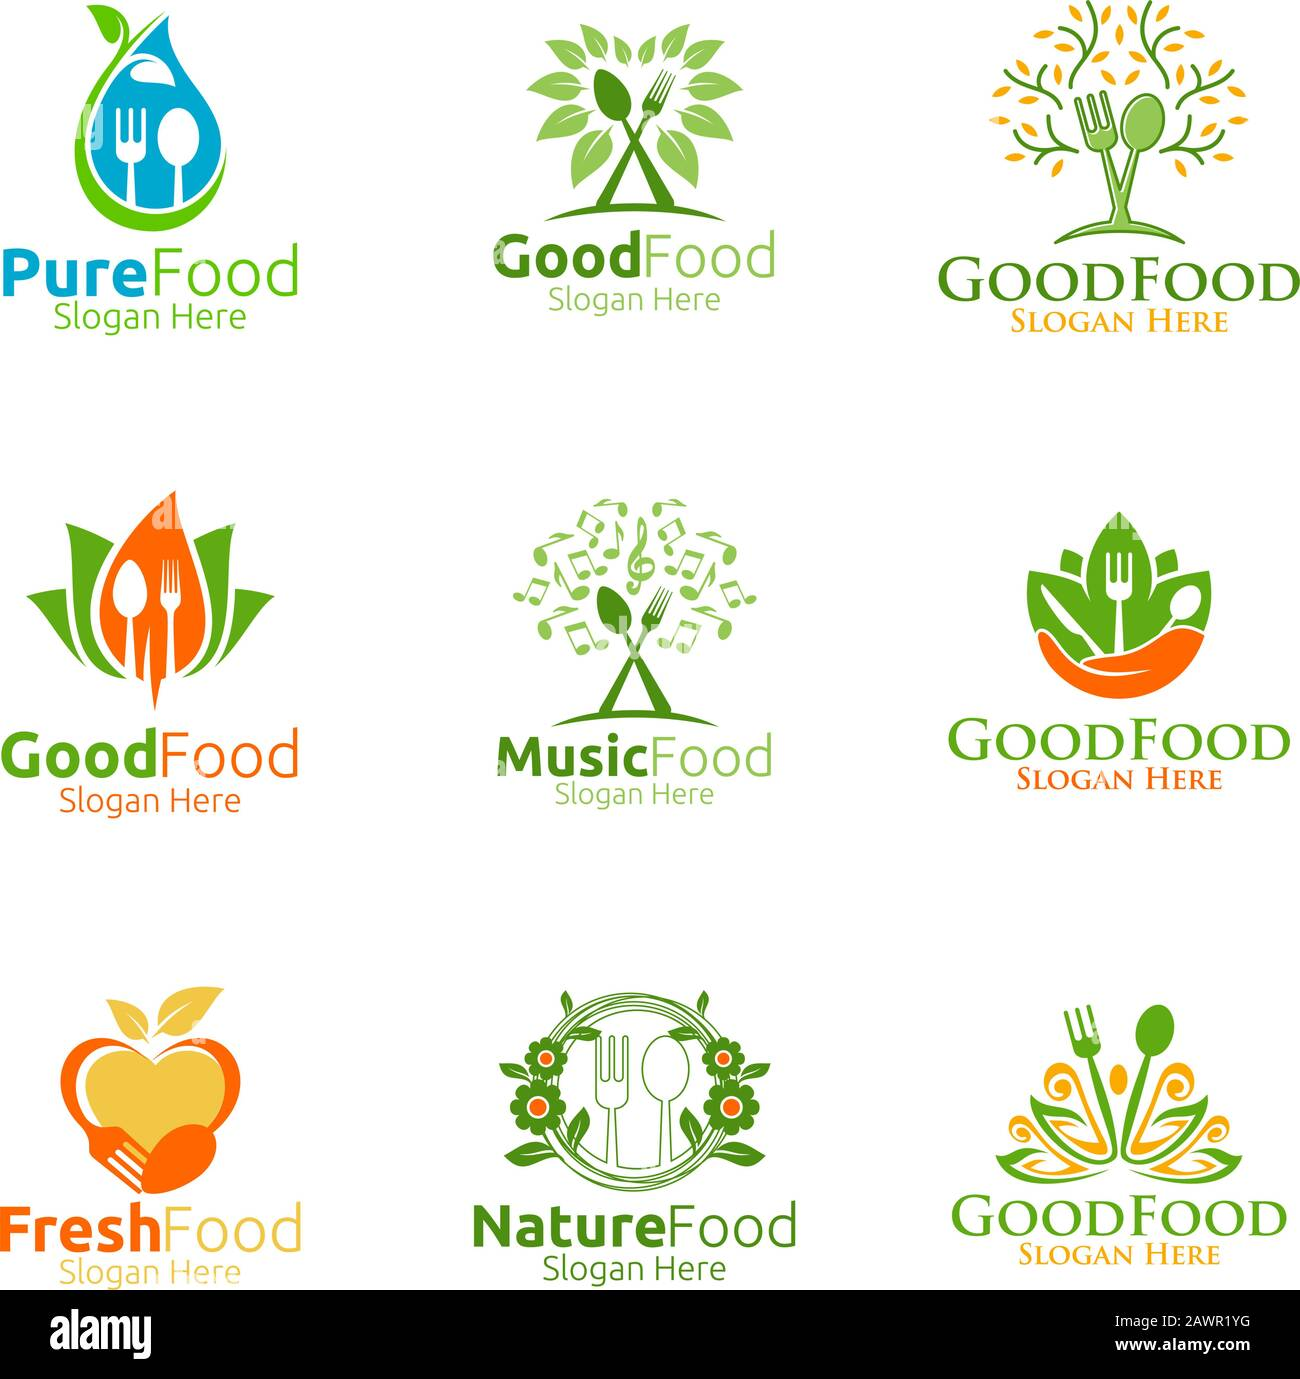 Healthy Food Logo For Restaurant Or Cafe Stock Vector Image Art Alamy